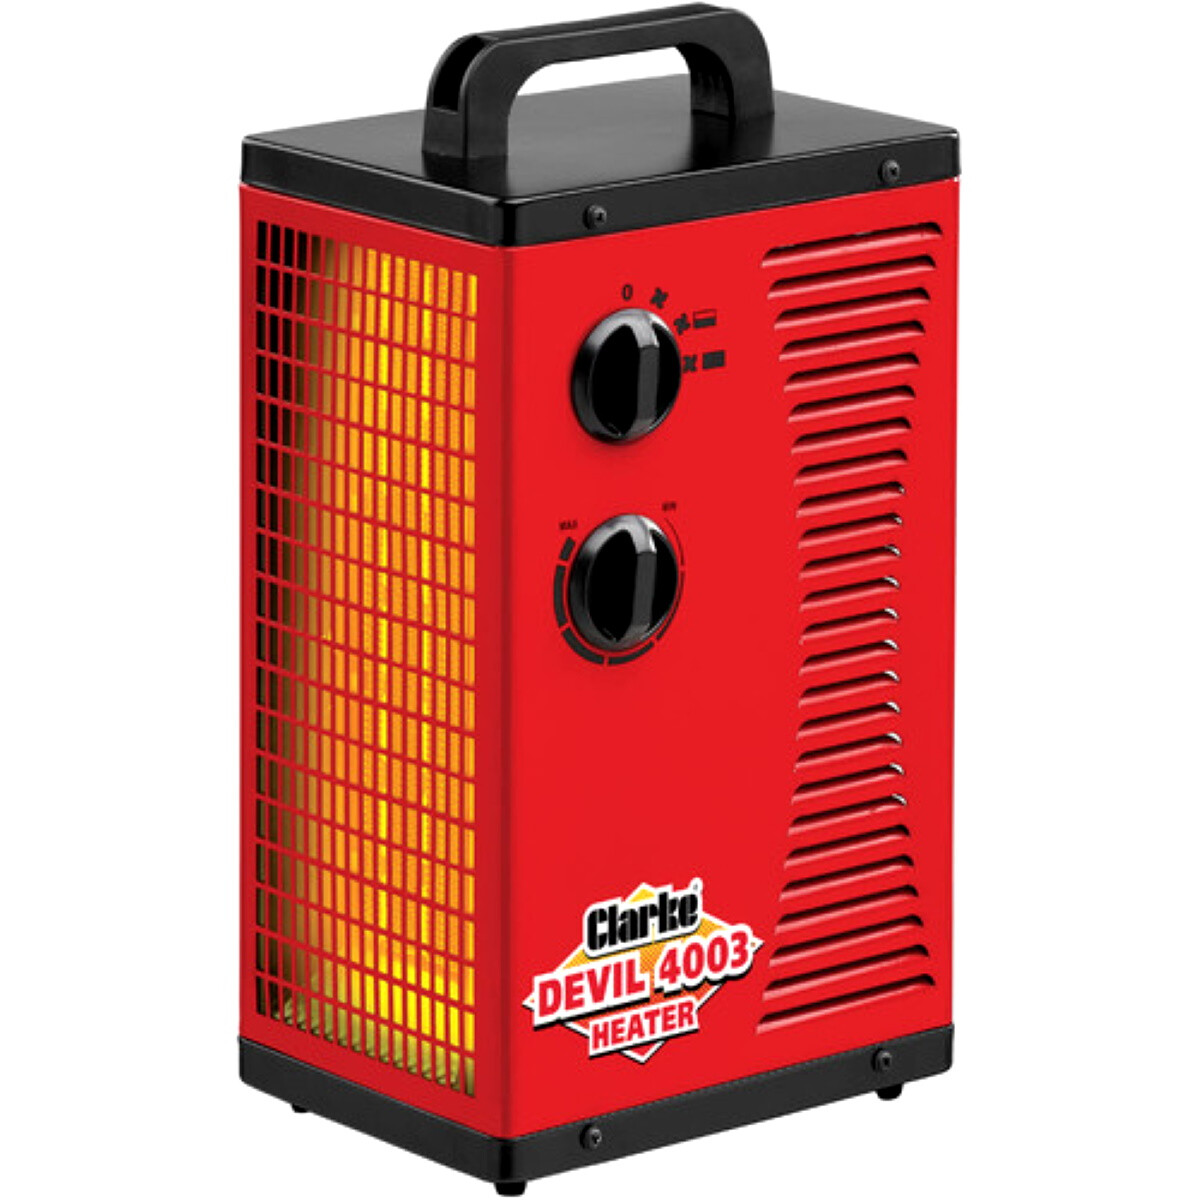 Clarke Devil 4003 2.8kW Workshop PTC Fan Heater 6925128